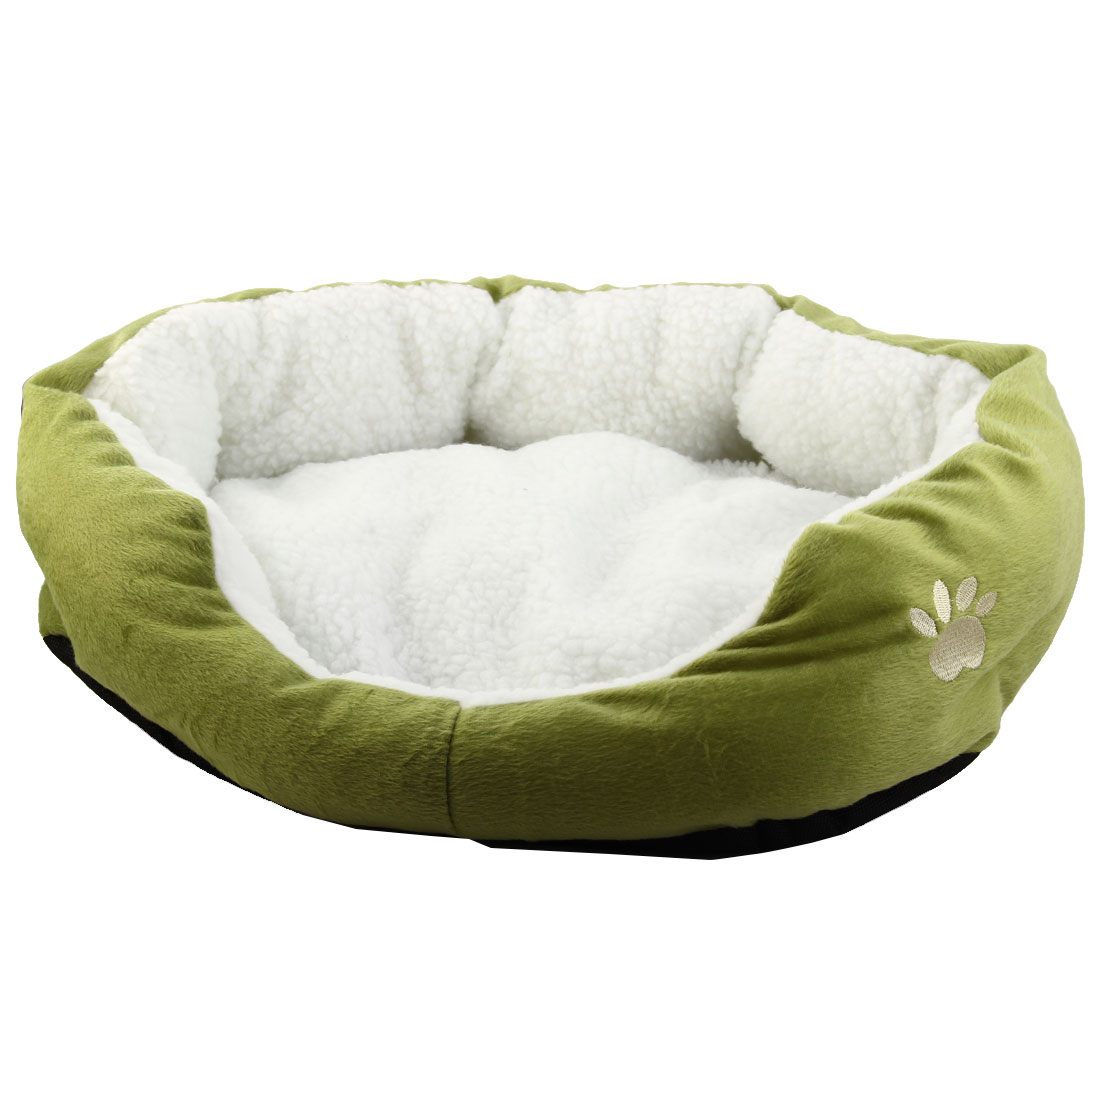 Pet Cat Plush Removable Cushion Nesting Dog Bed Cave Olive Green 50cm x 40cm